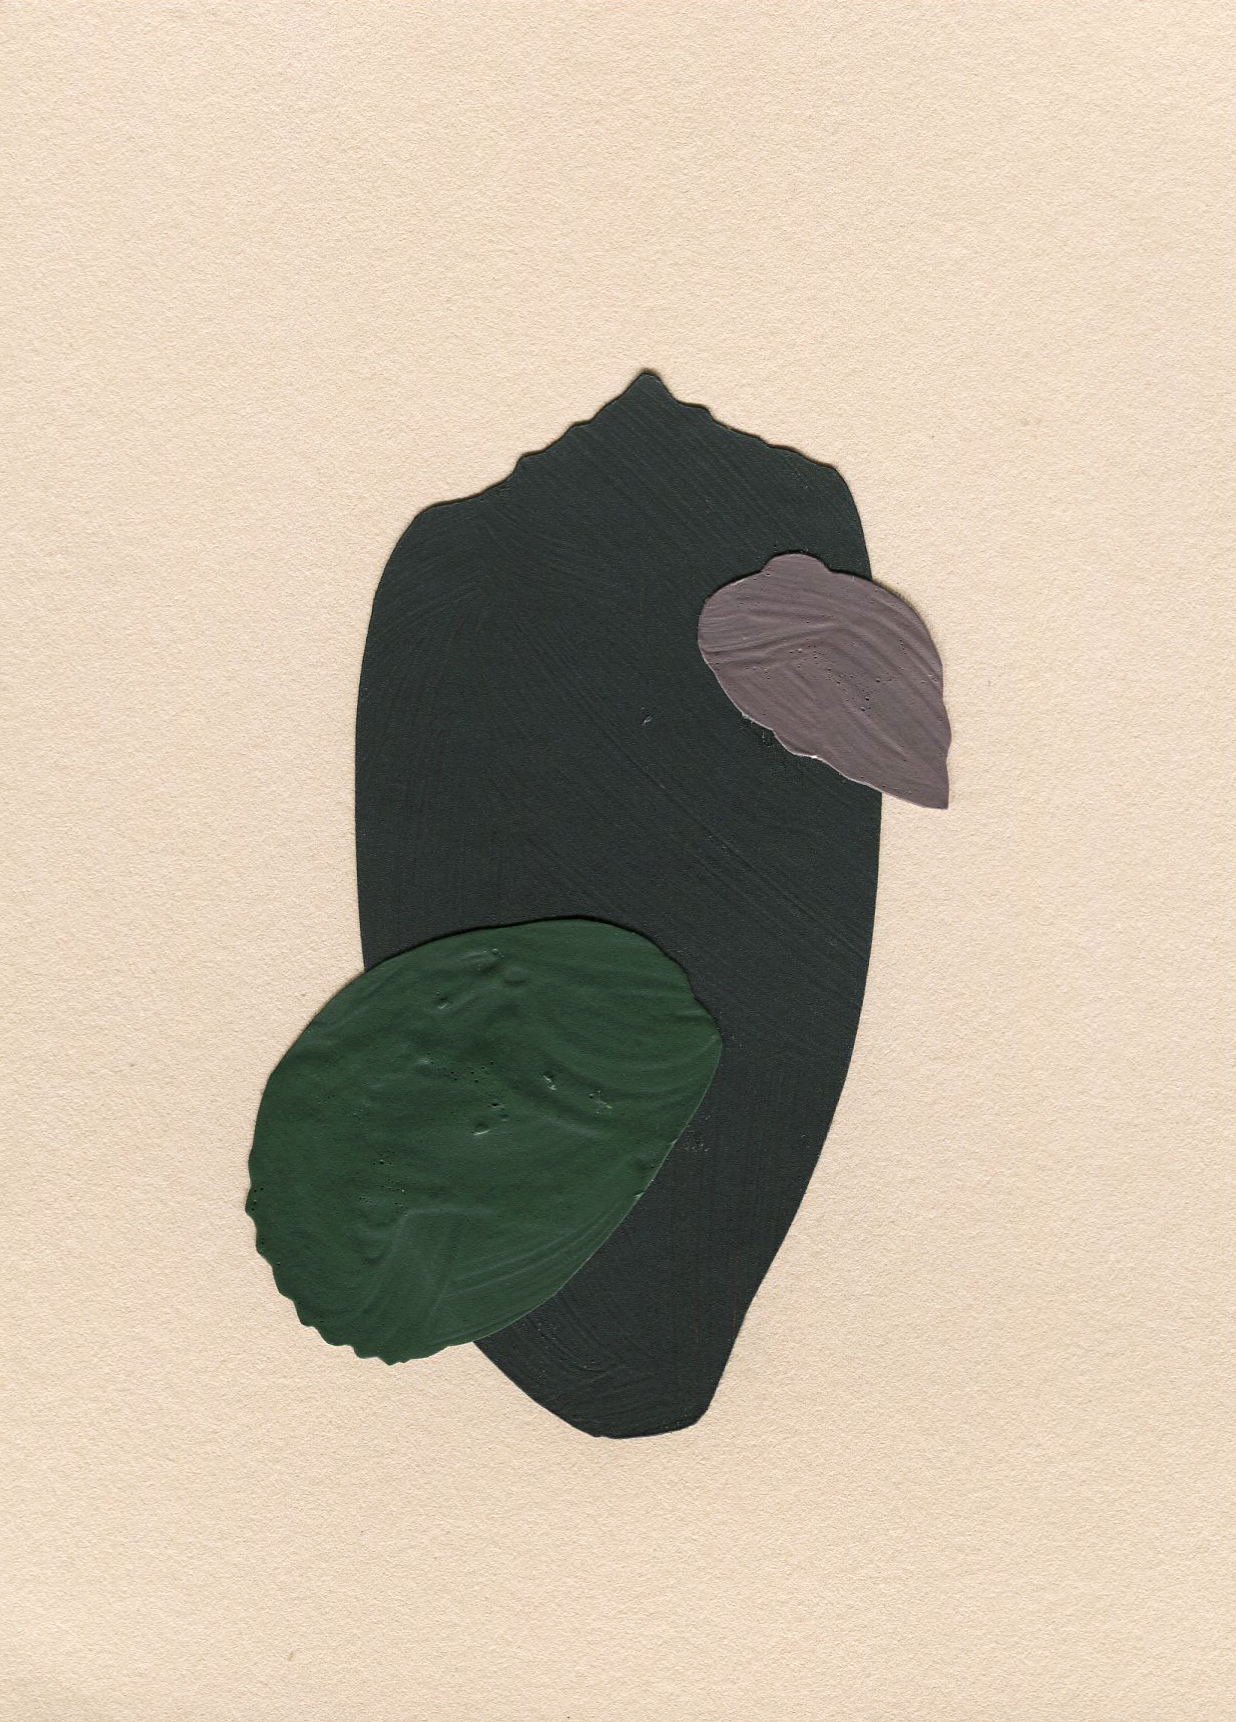 Shell Collection #5, collage, found paper, acrylic paint on Stonehenge paper, 105mm x 148mm